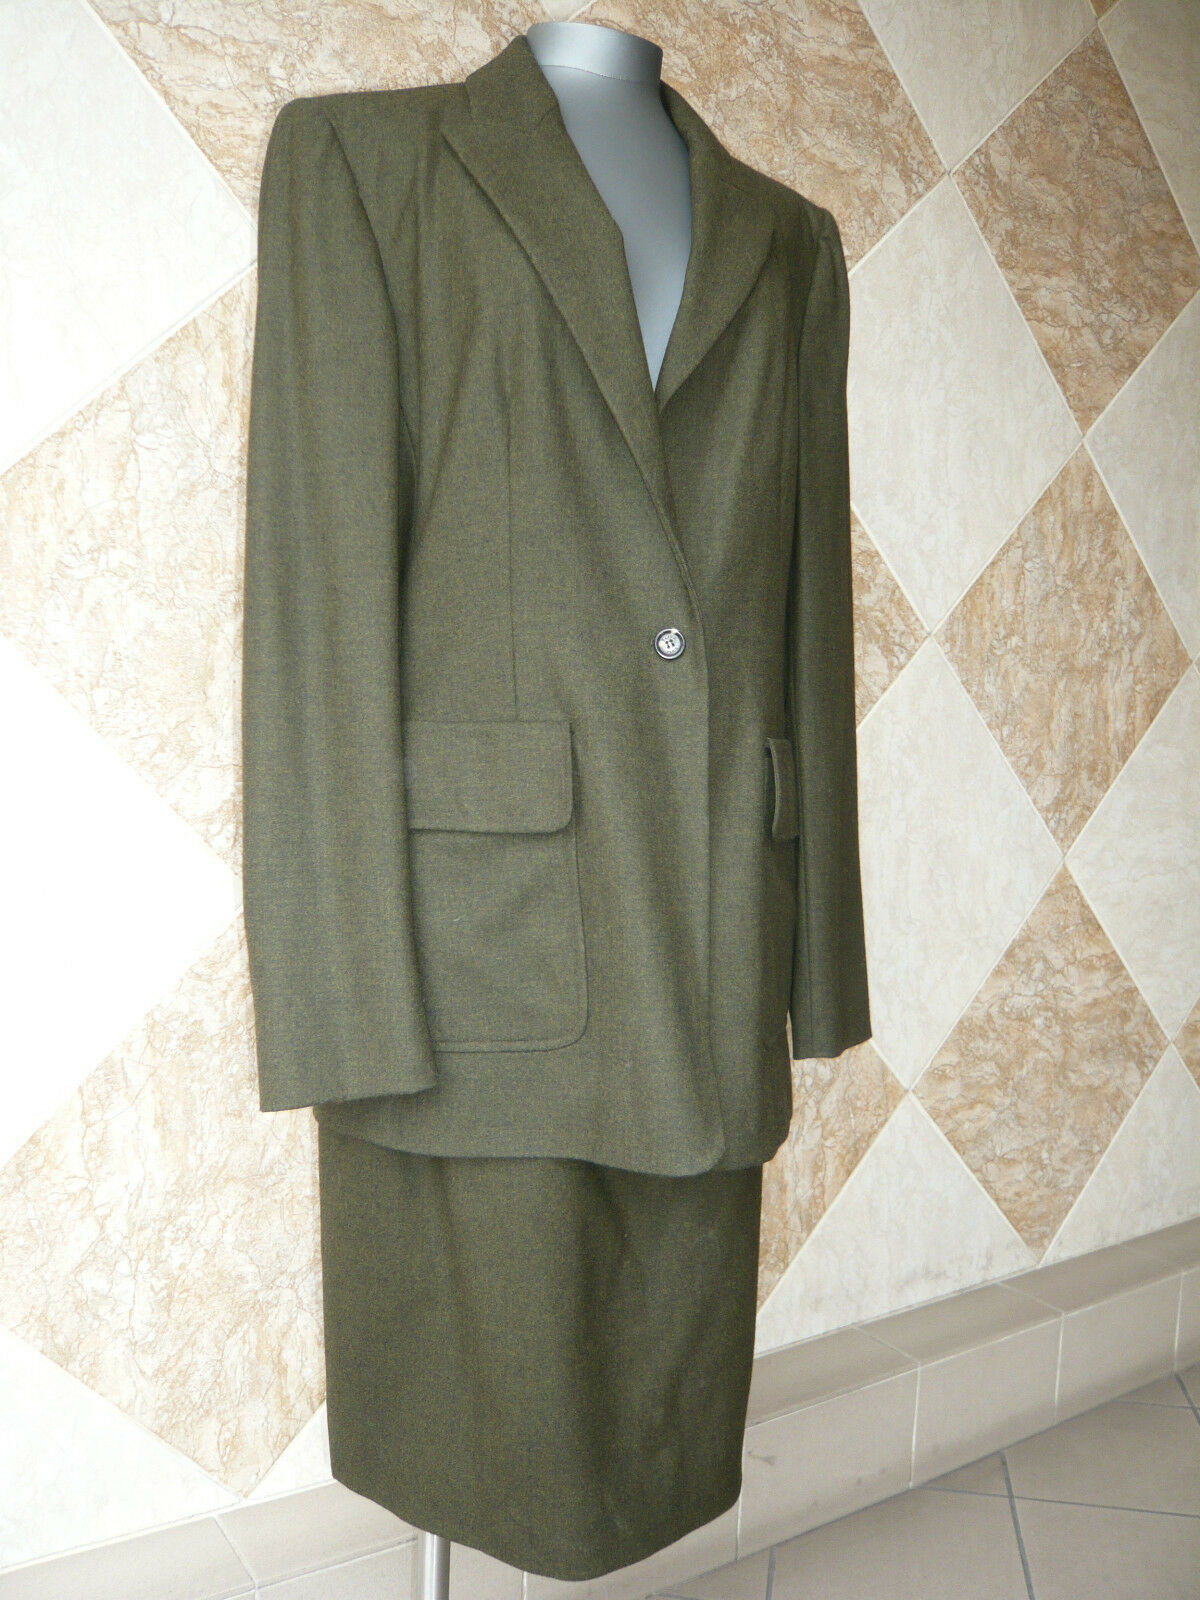 Dimensioneur Dimensioneur Dimensioneur   CELINE     Colore     verde Olive     T.42 0ae7ba